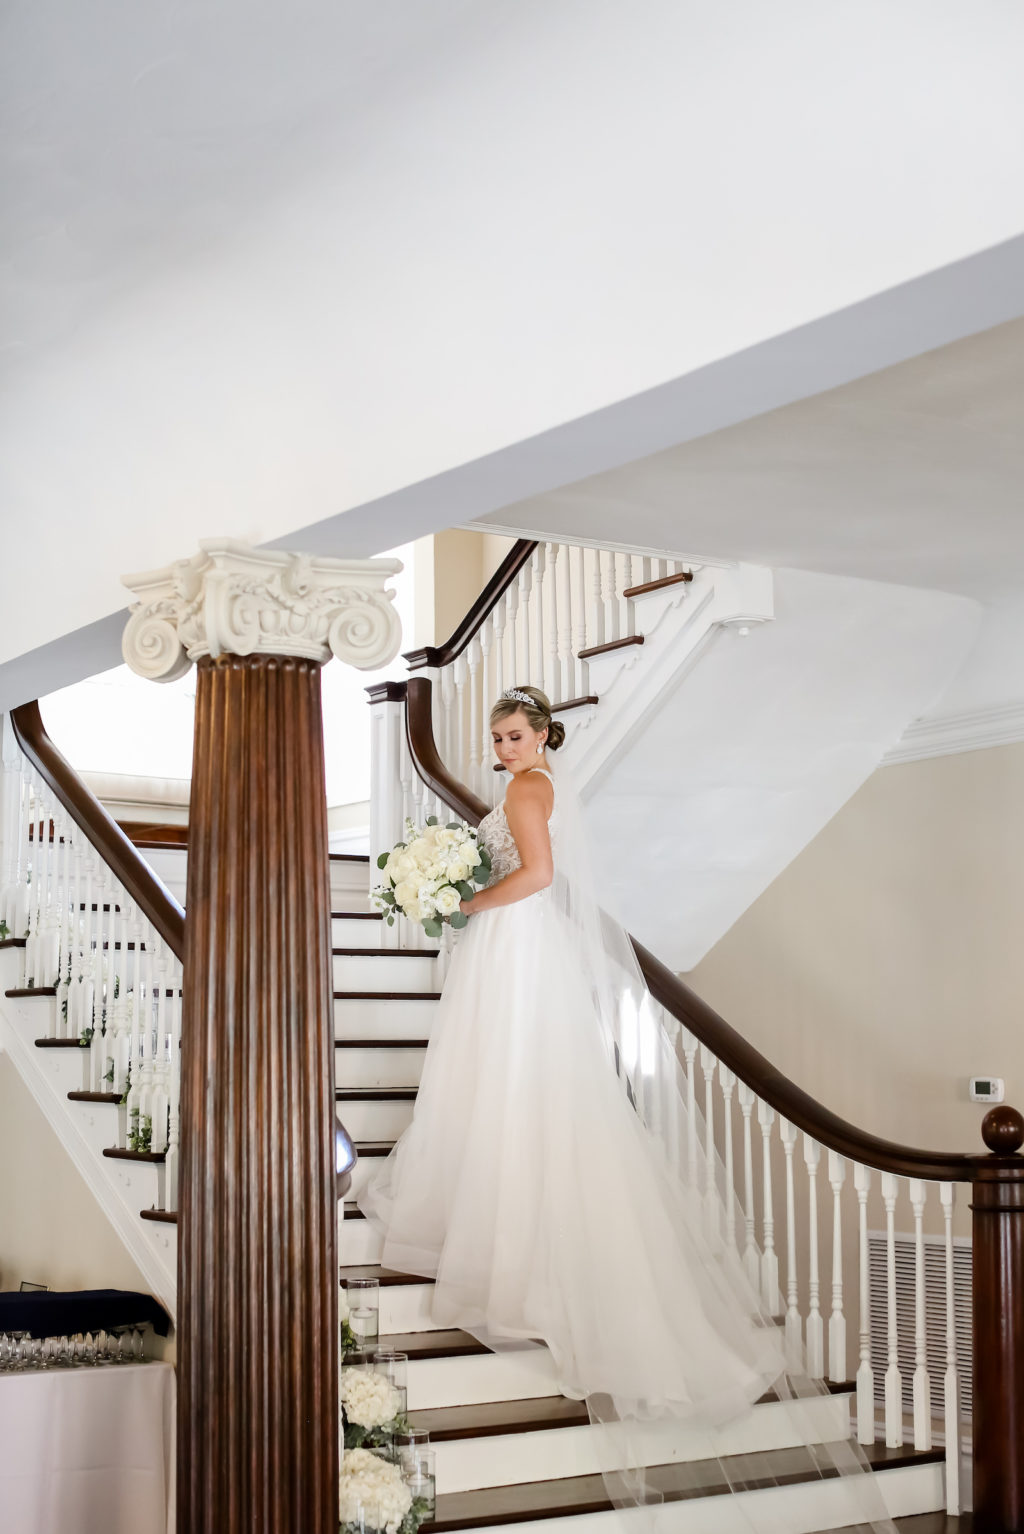 Classic Bride in Tulle Skirt A-Line Wedding Dress Holding White Floral Bouquet on Staircase of Wedding Venue The Orlo | Tampa Bay Wedding Photographer Lifelong Photography Studio